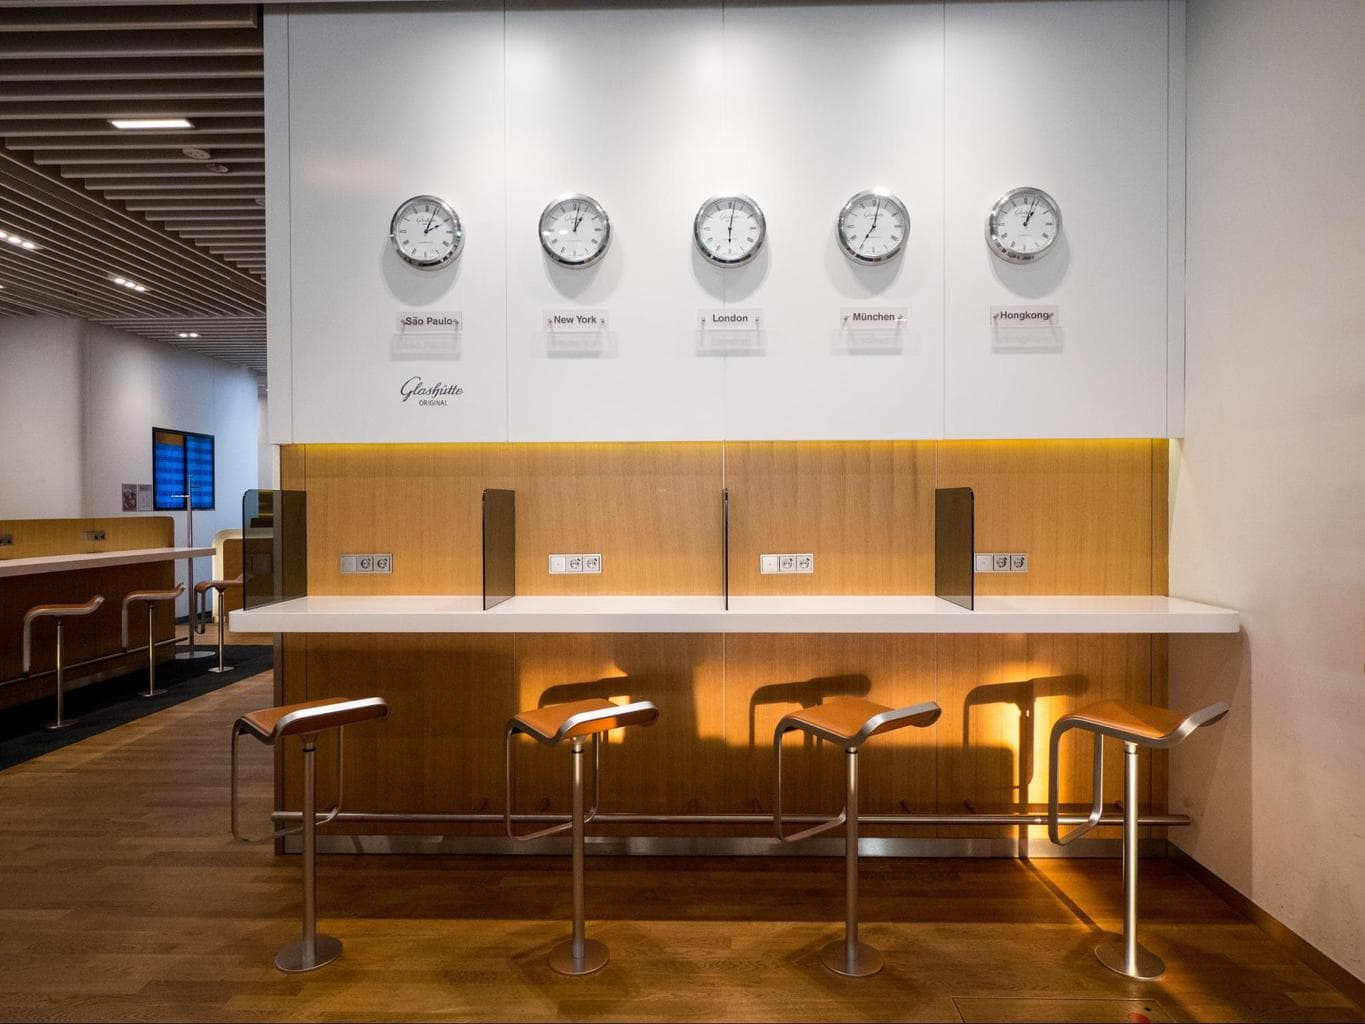 Working desks in Lufthansa Business Class Lounge at Munich Airport